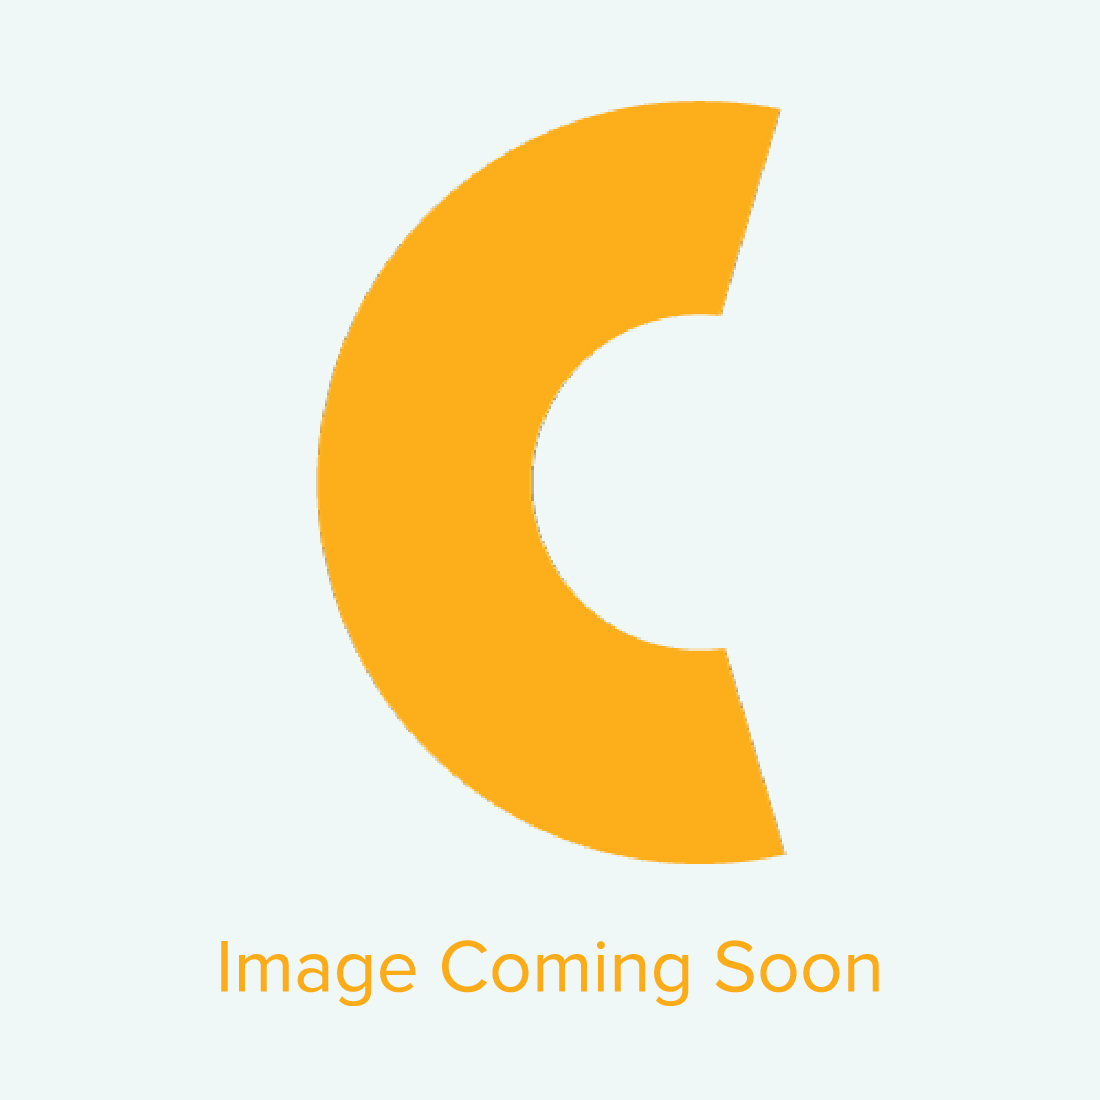 Rectangle Sublimation Air Fresheners (8/sheet)